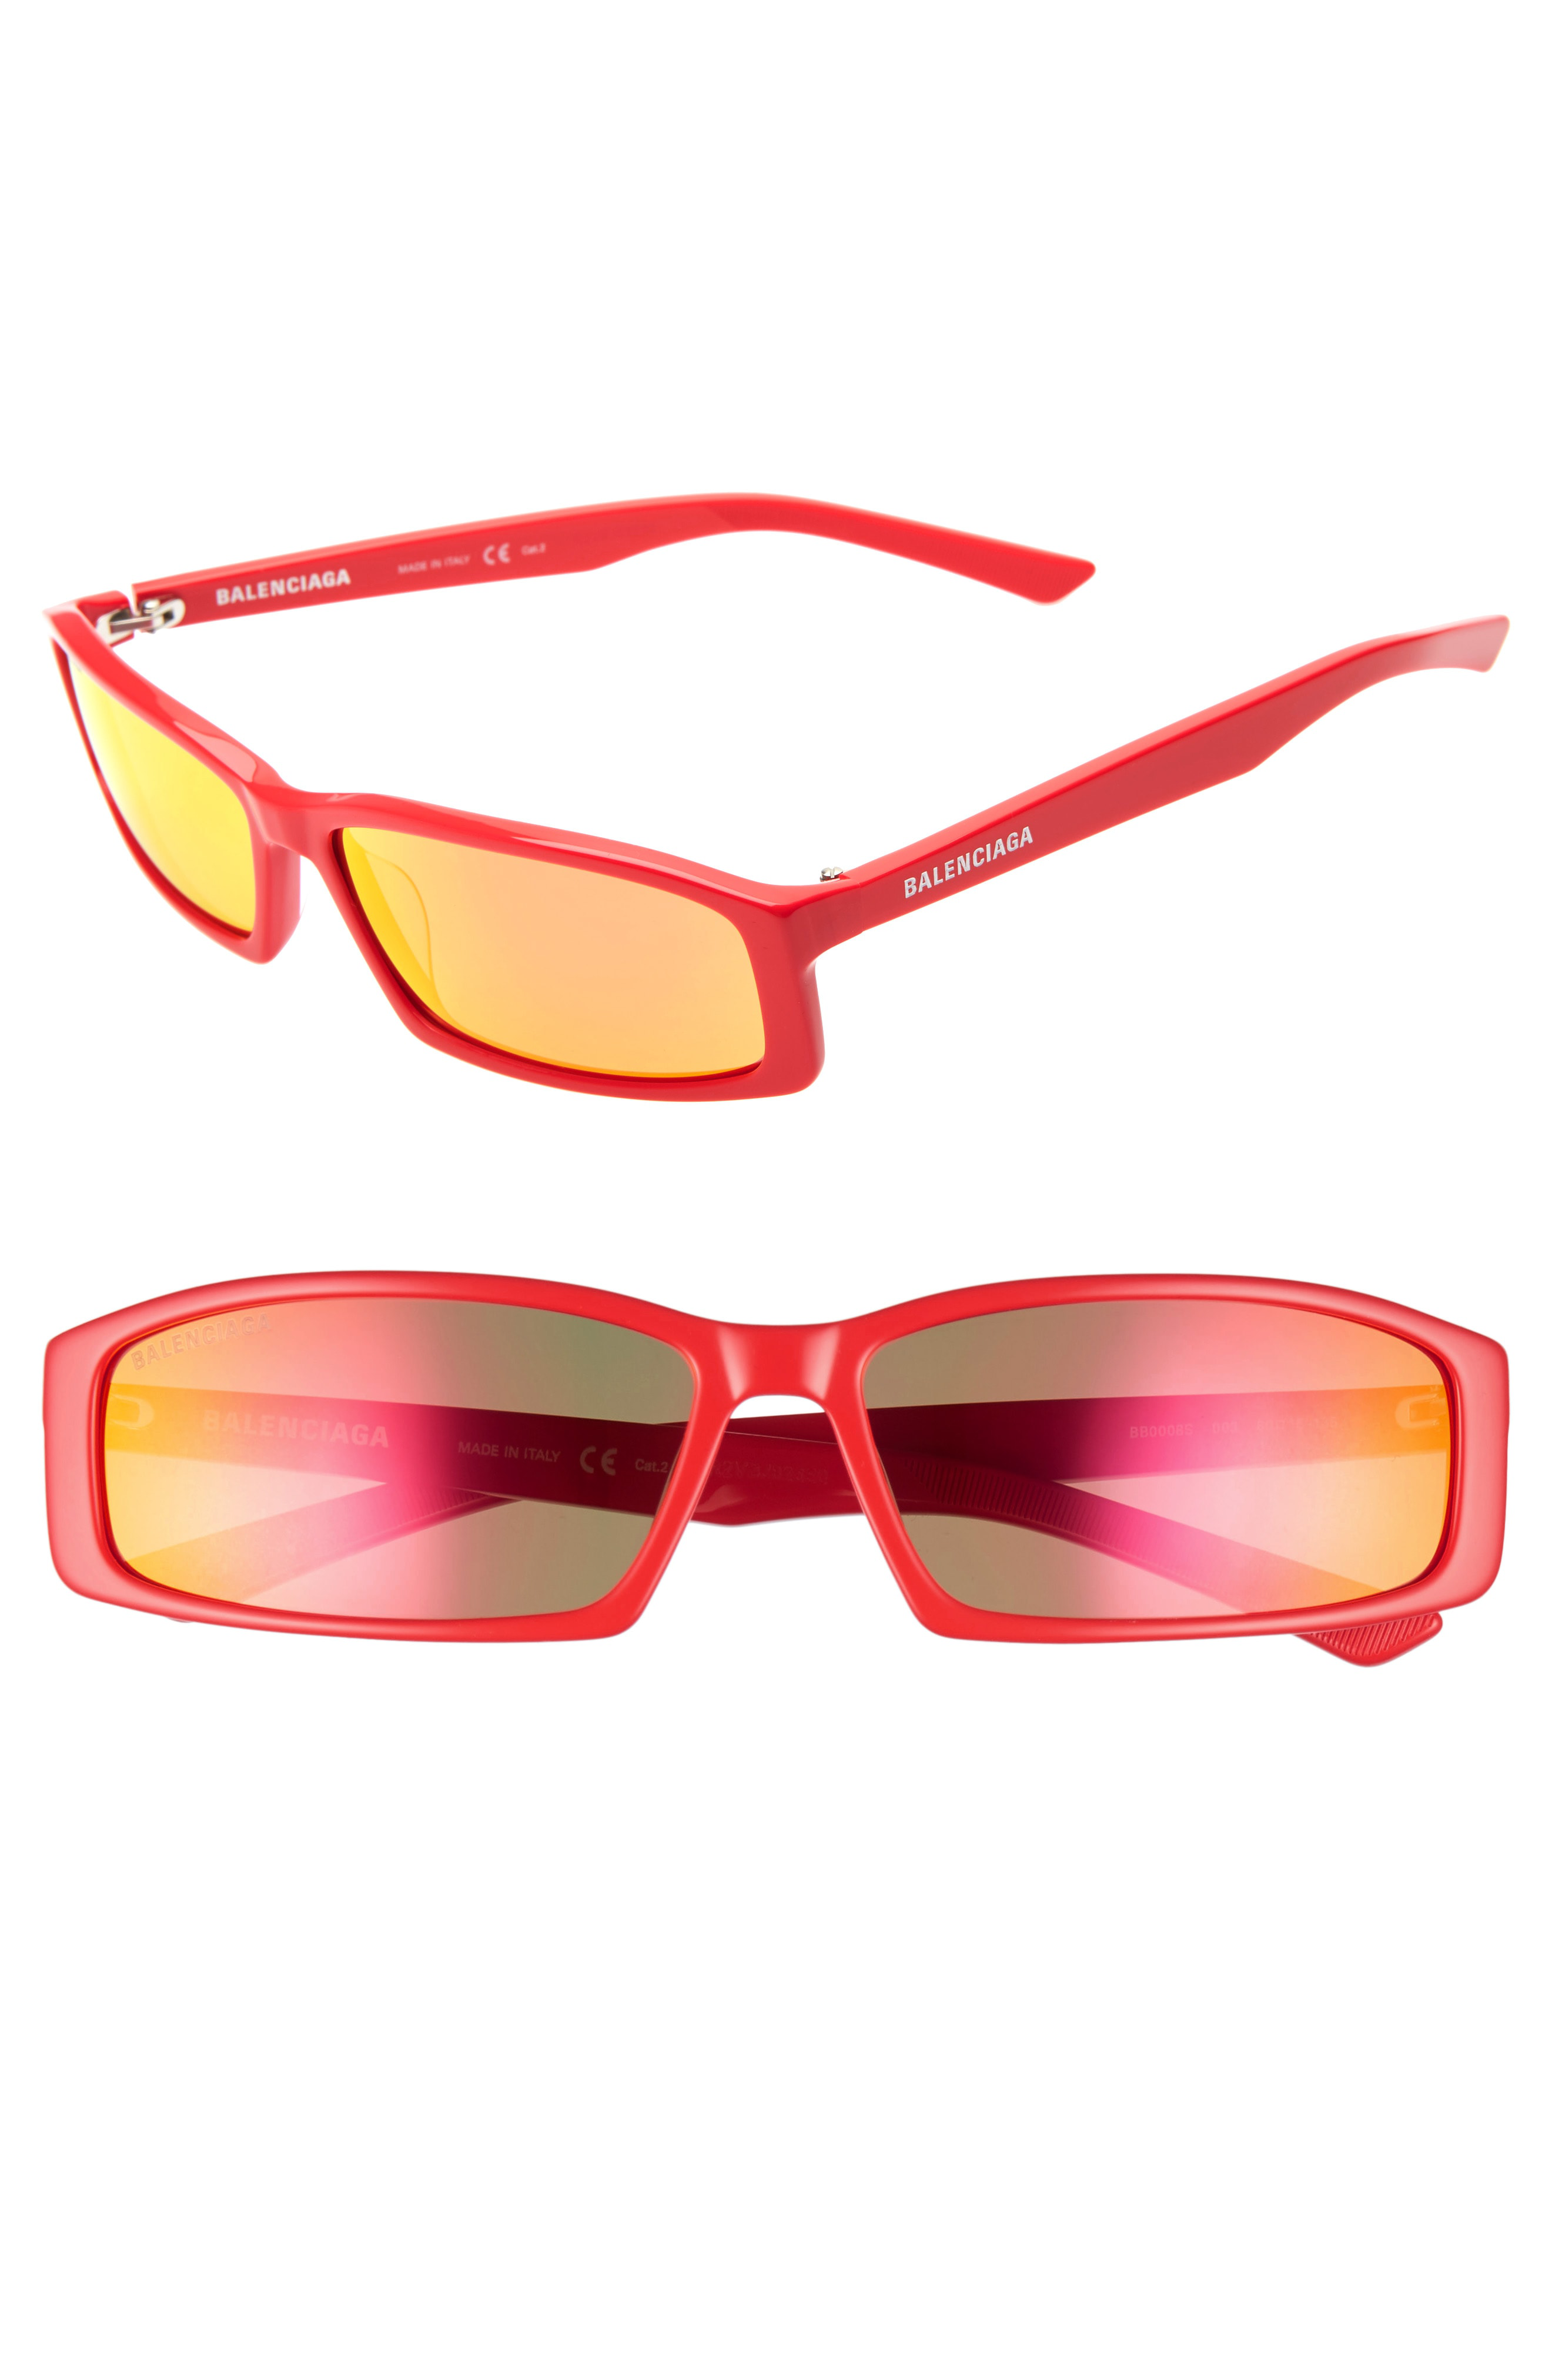 Balenciaga 60Mm Rectangle Sunglasses - Shiny Solid Red/ Red